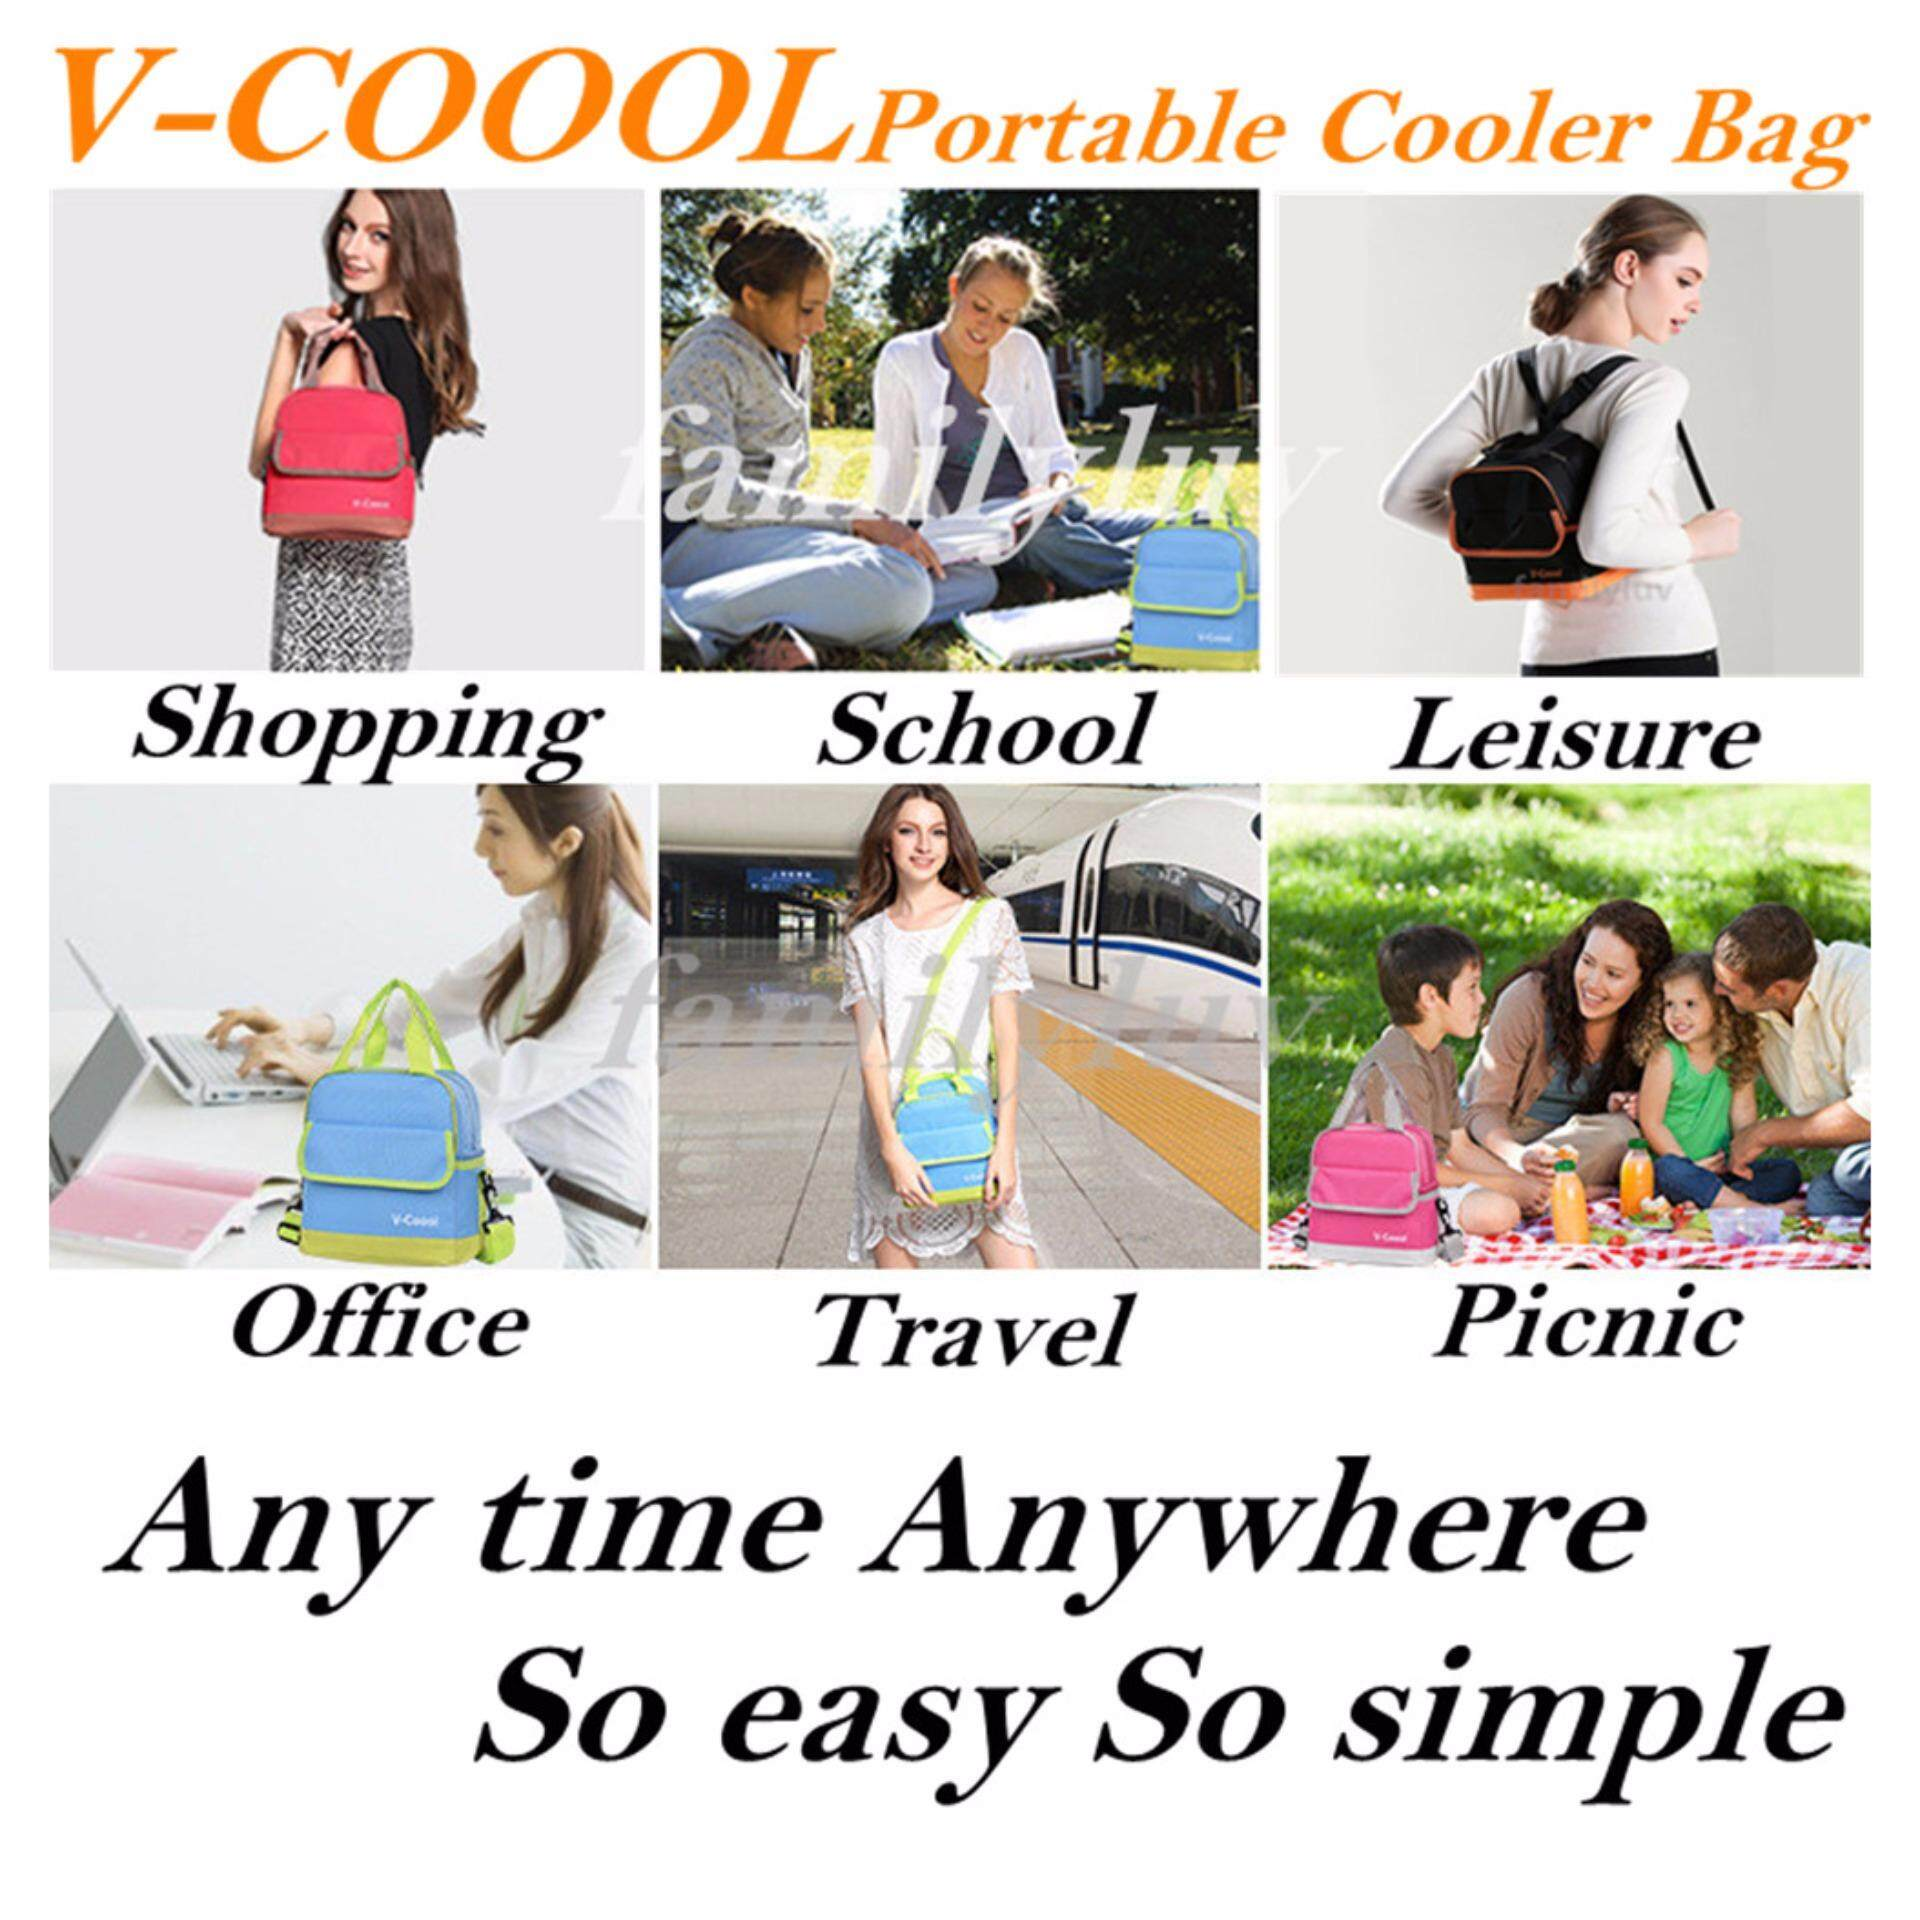 V-Coool Double Deck Cooler Bag Value Package